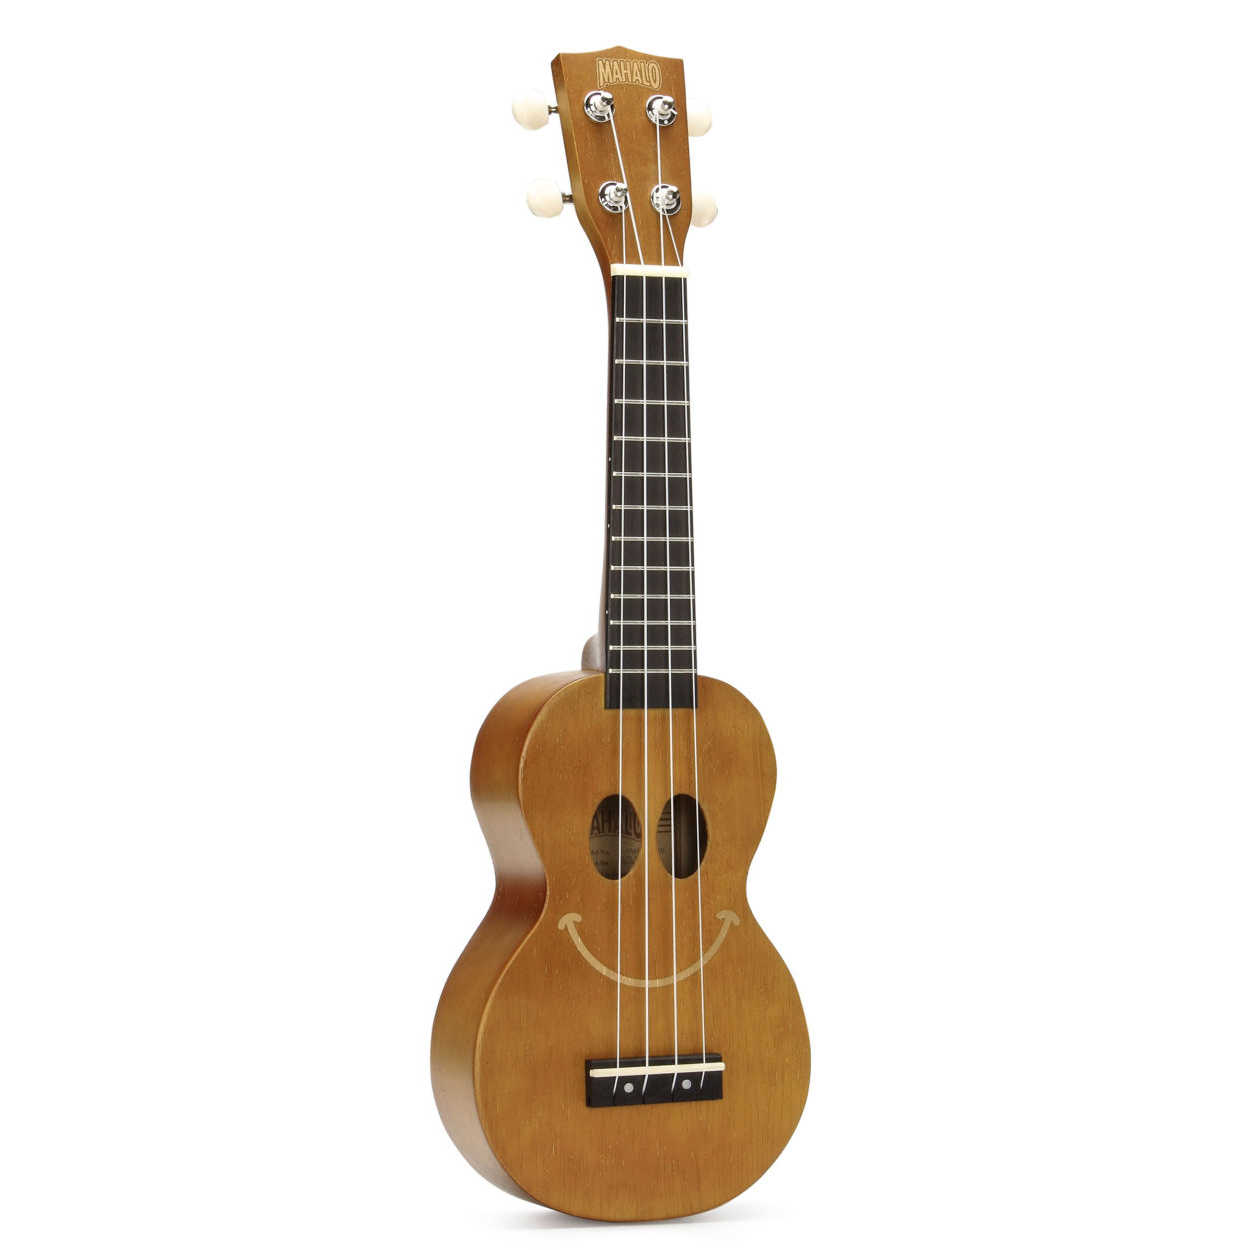 Mahalo U-Smile Series – Soprano Ukulele - Transparent Brown